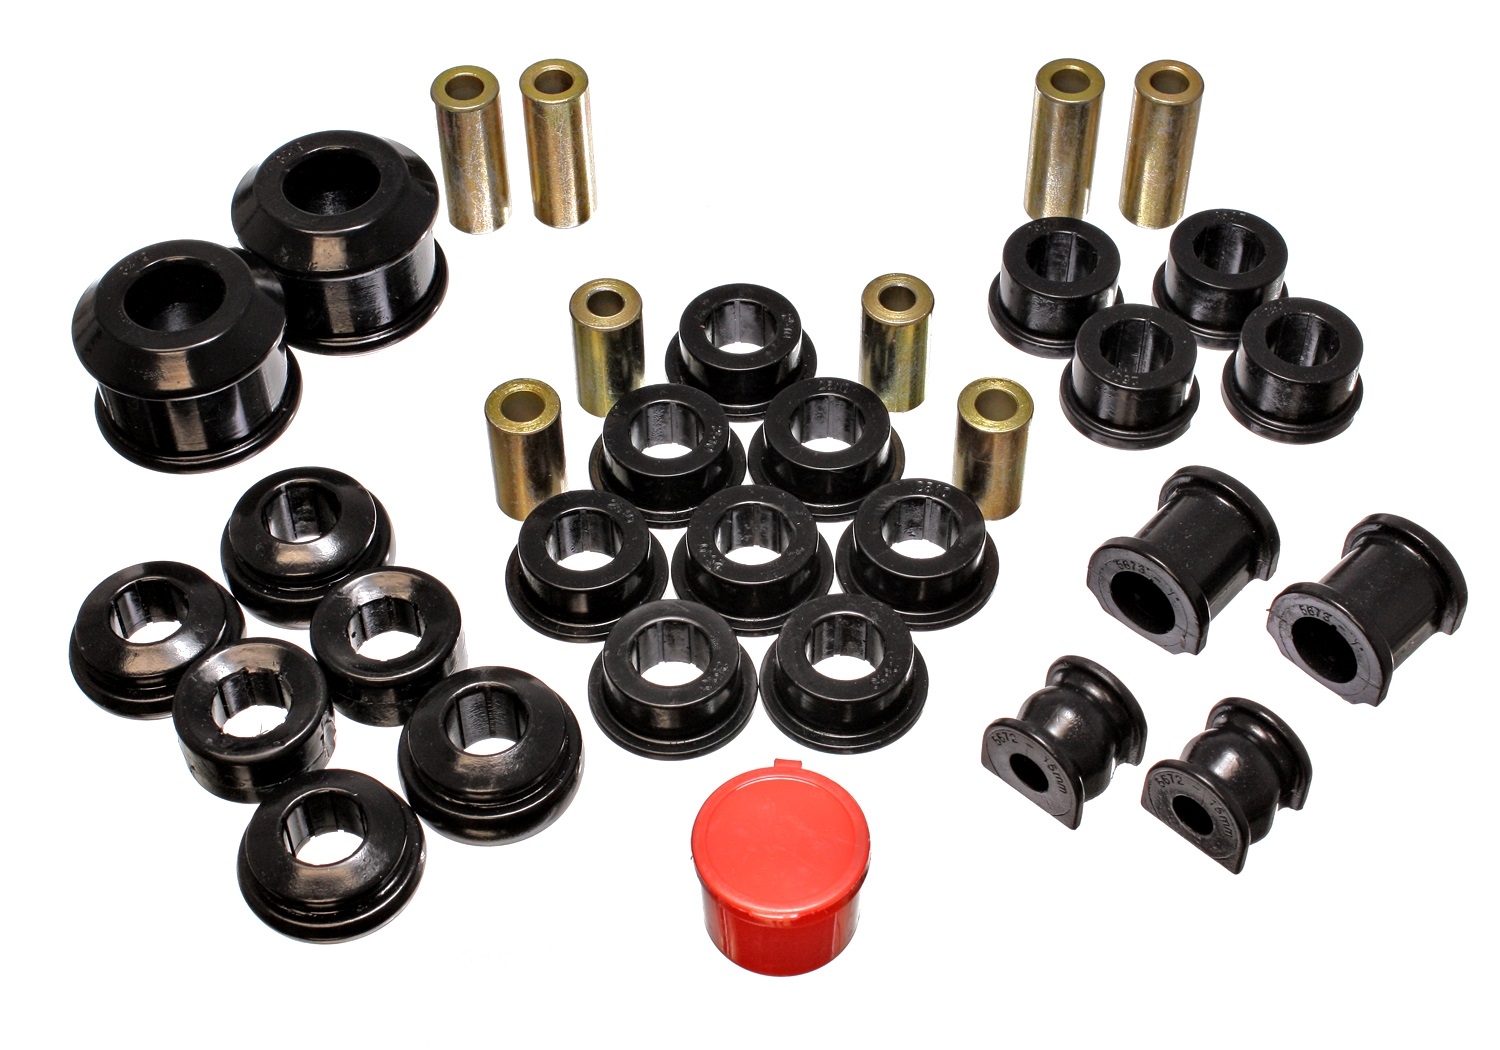 Energy Suspension 02-05 Civic Si Bushing Kit: Black